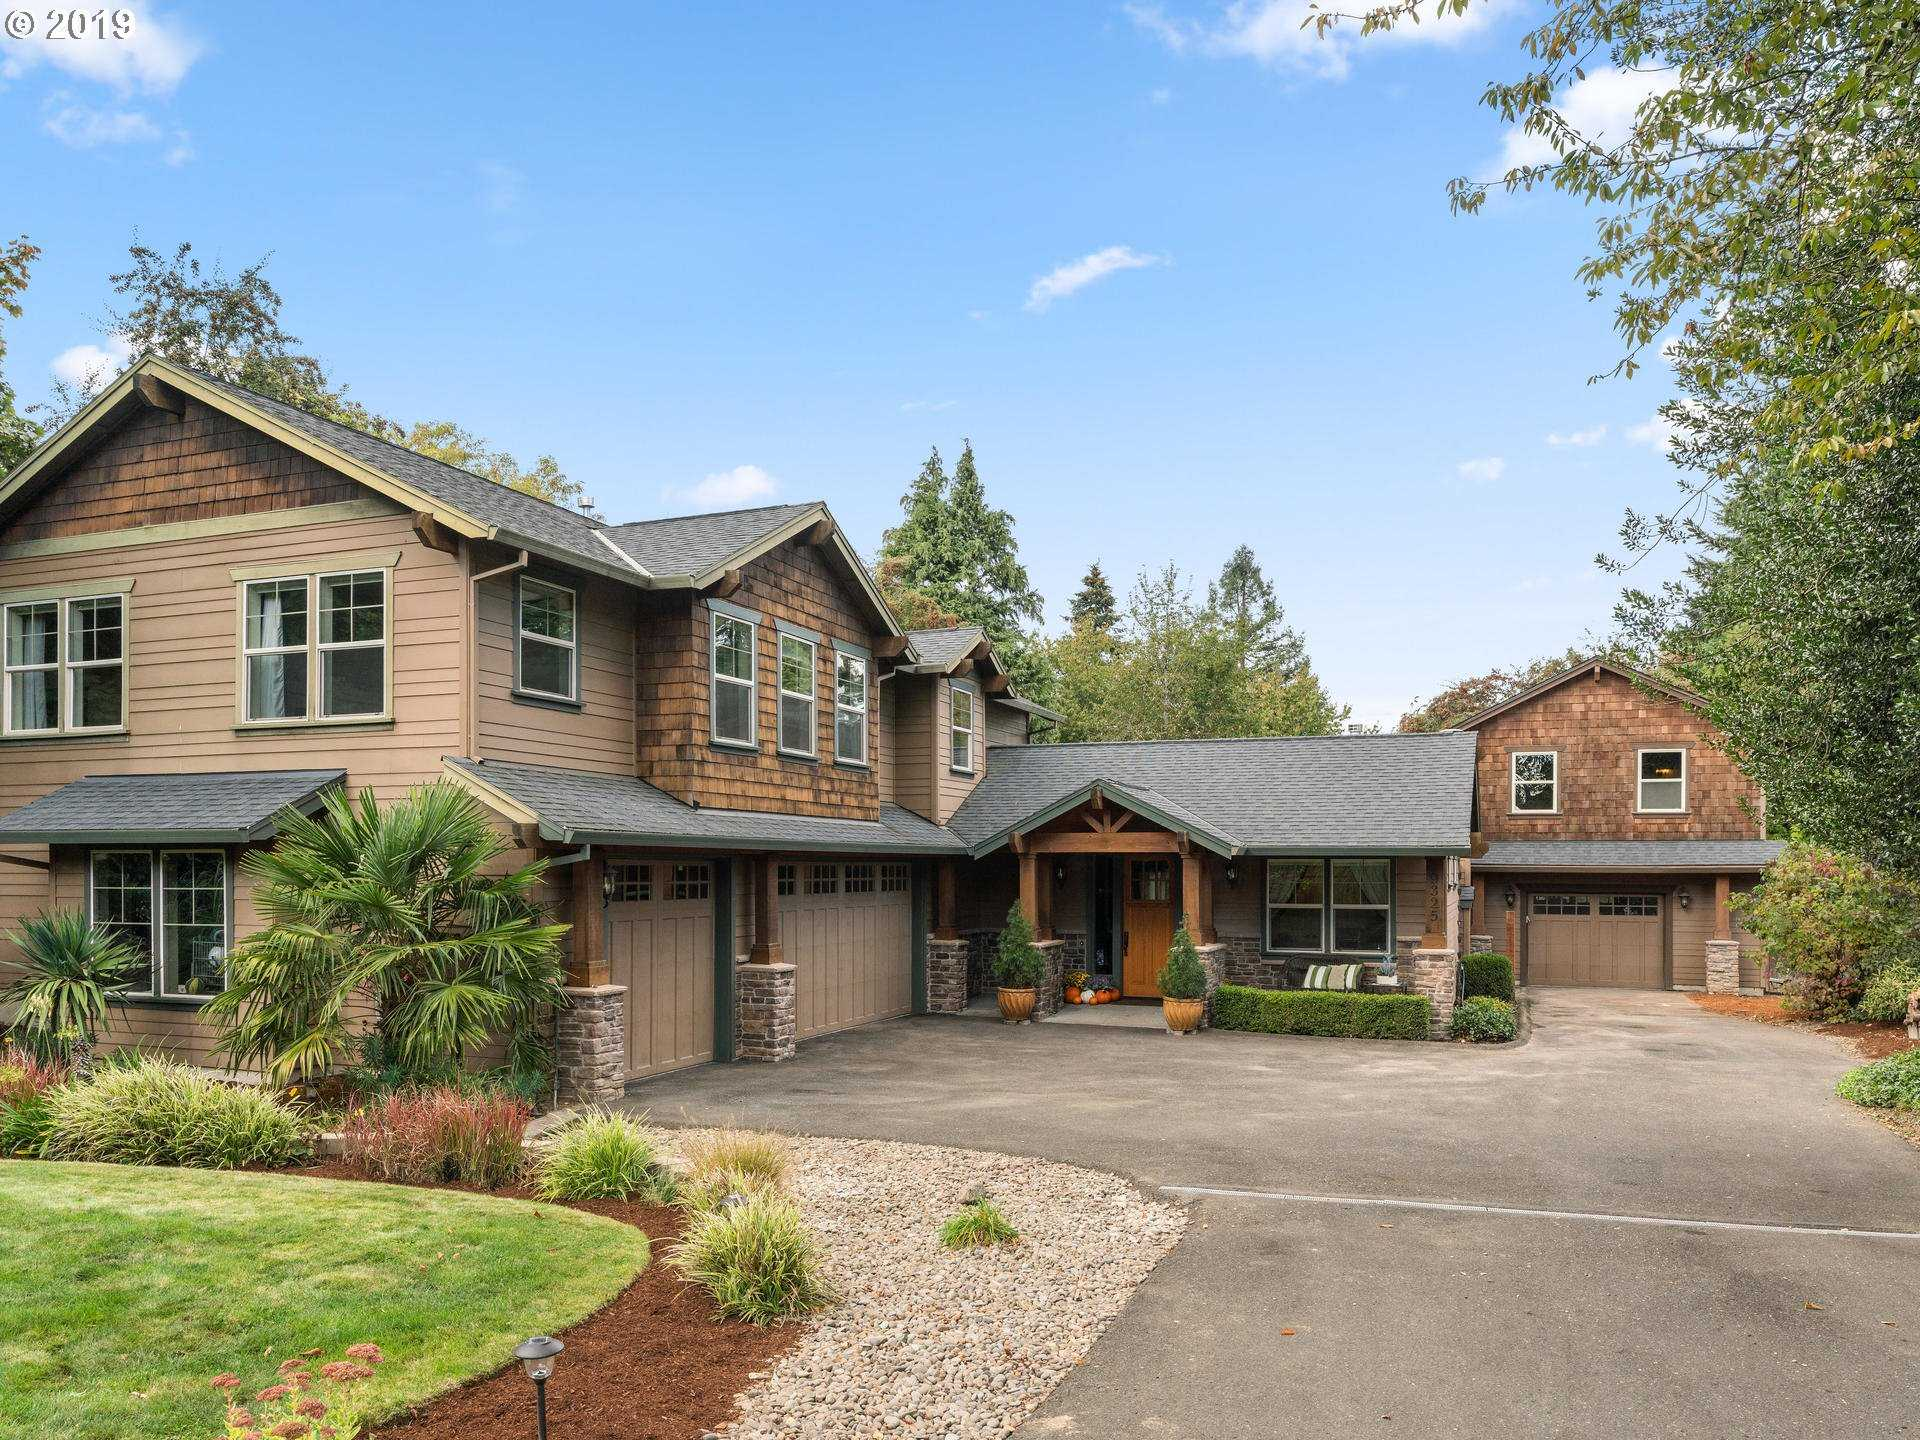 $849,900 - 5Br/5Ba -  for Sale in Tigard